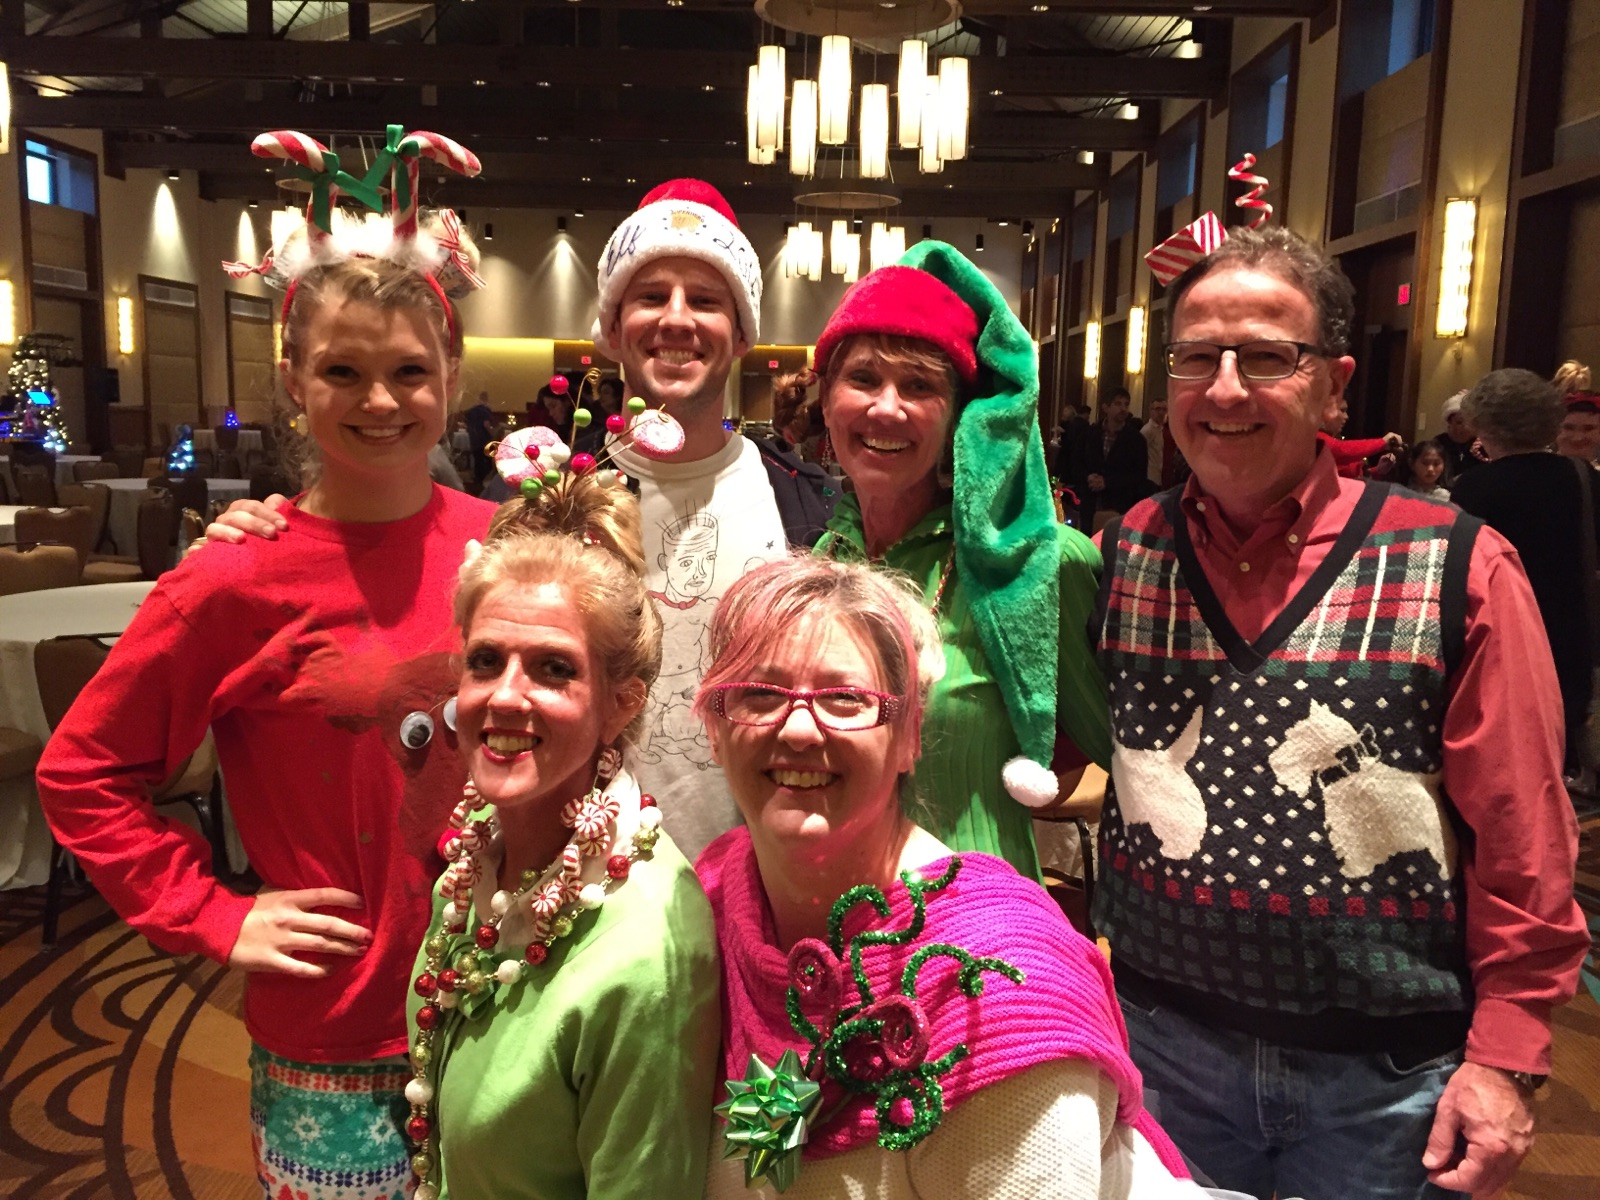 Dowd Insurance team volunteers at Superhero Kids holiday party